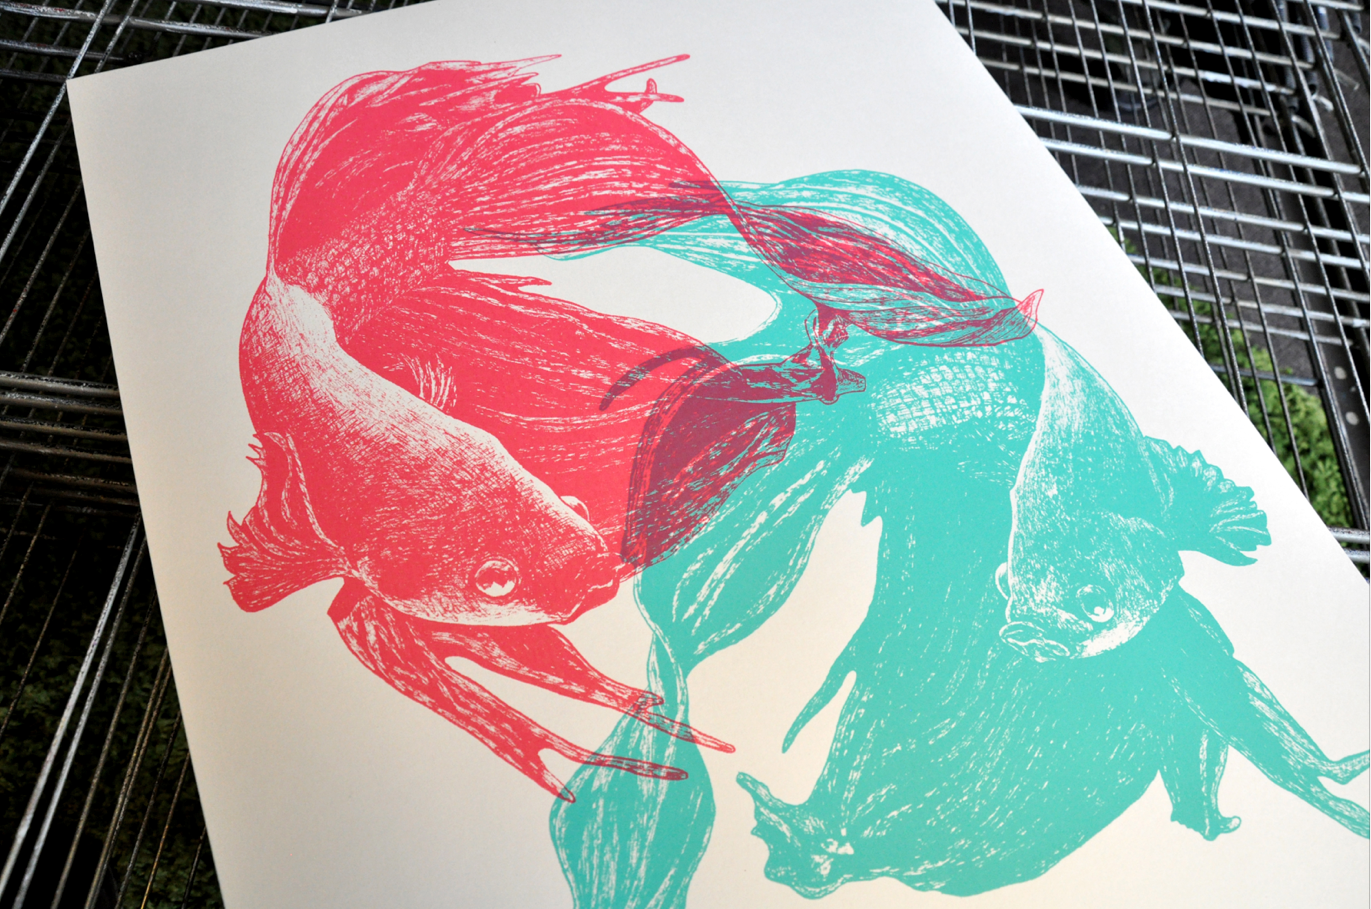 screen printing art - Google Search | screenprint | Pinterest ...